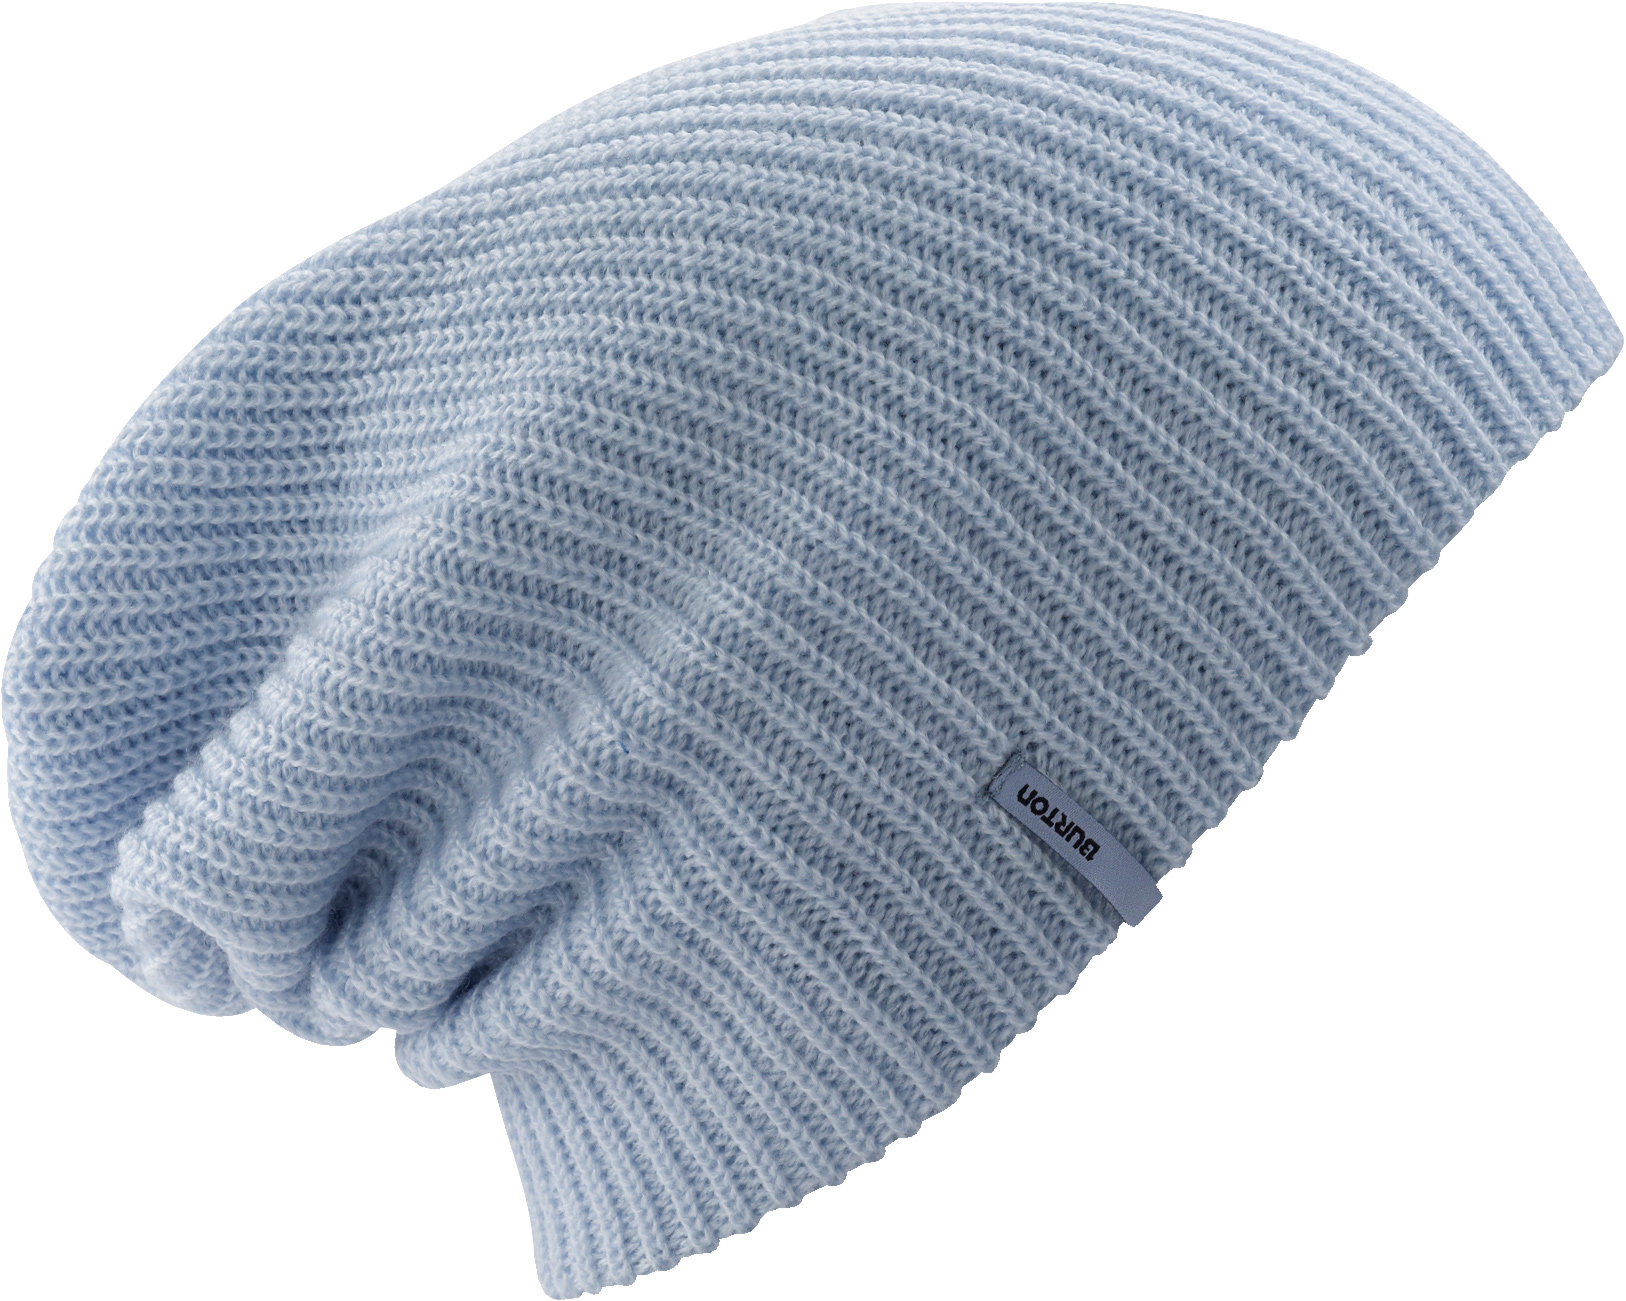 Snowboard Key Features of the Burton Truckstop Beanie: 100% Acrylic Basic Solid Knit Beanie Fold Up with Super Slouch Fit - $13.00